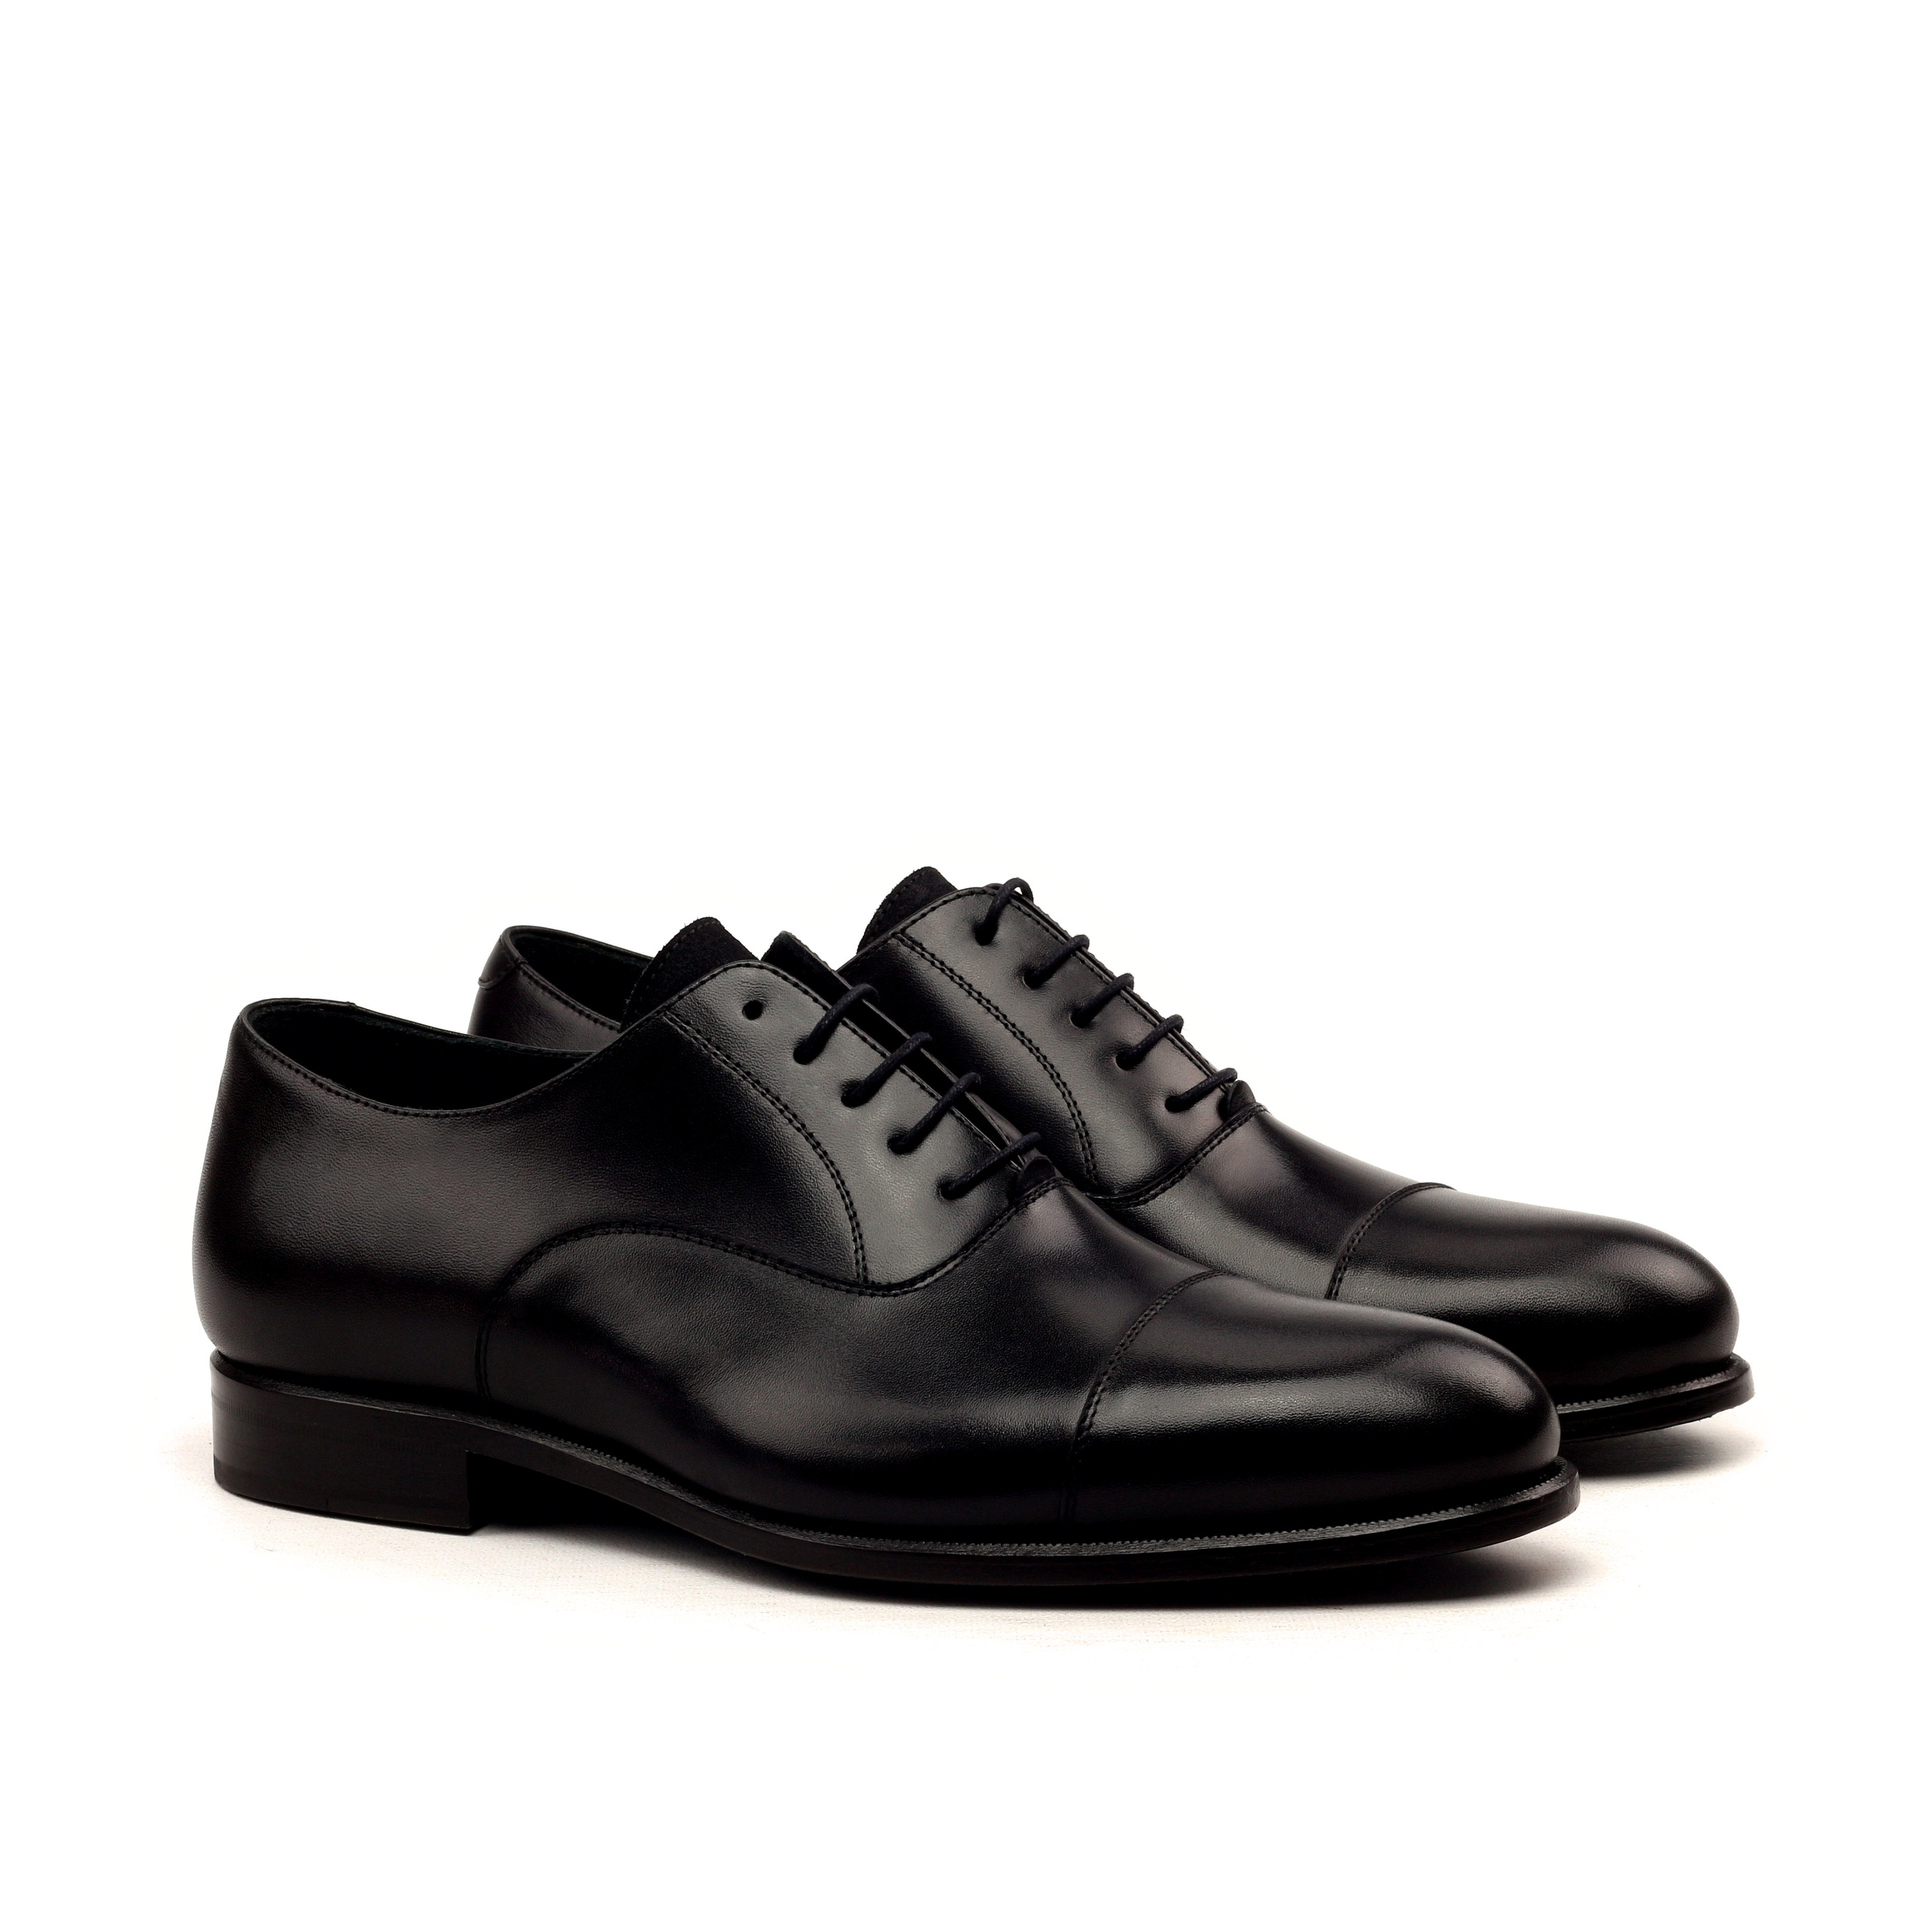 MANOR OF LONDON 'The Oxford' Black Calfskin Shoe Luxury Custom Initials Monogrammed Front Side View